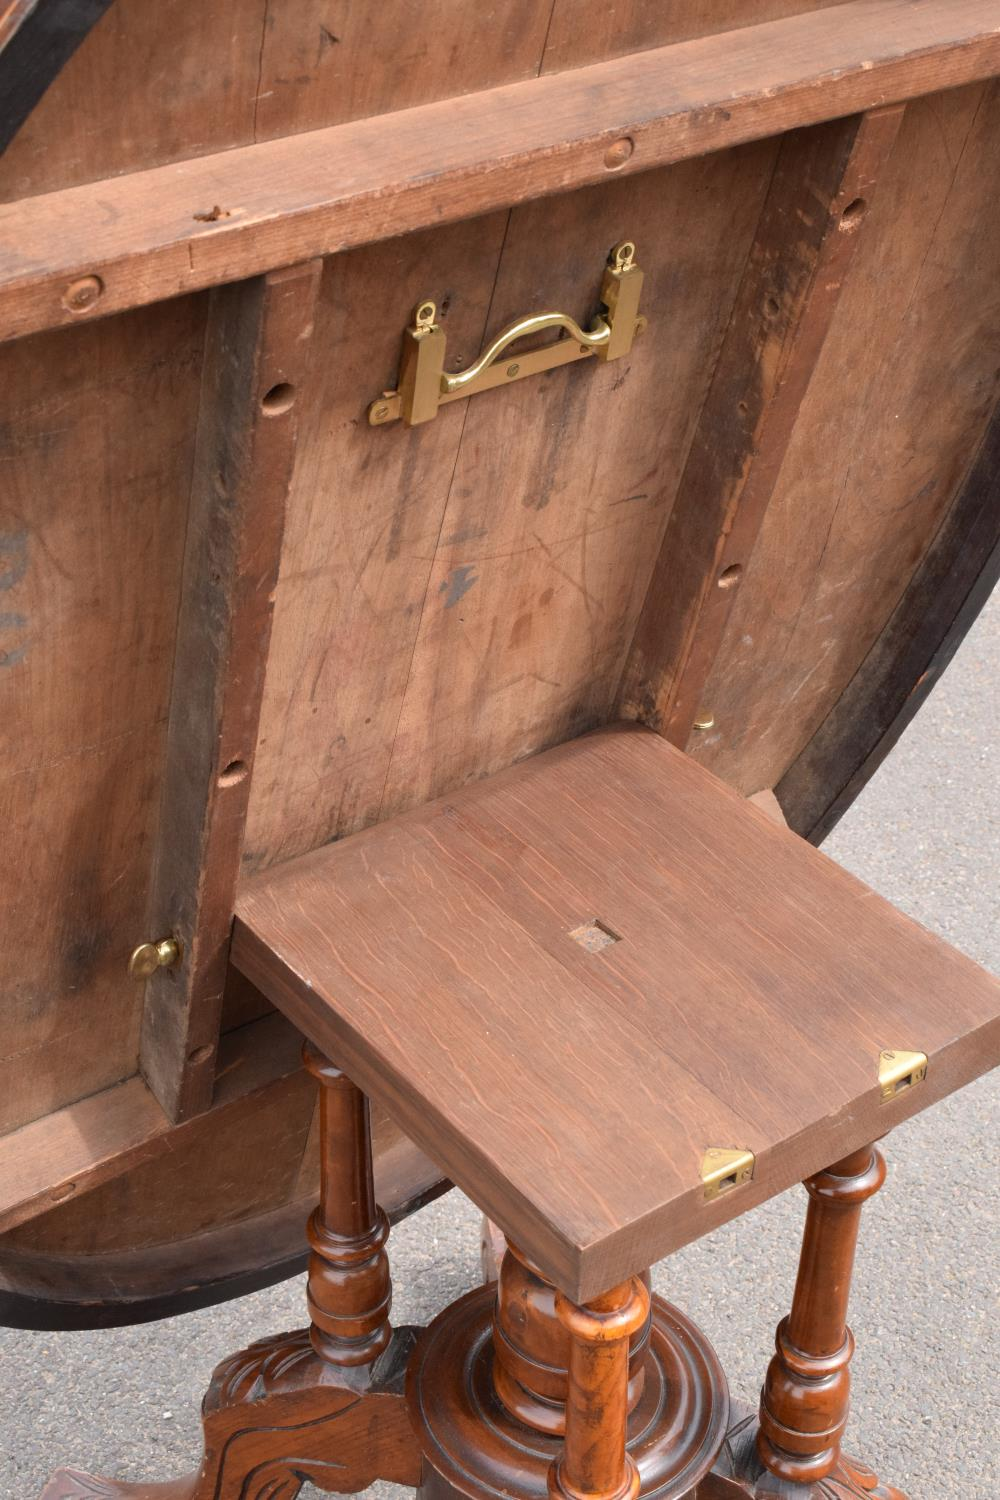 Late 19th century Victorian walnut veneered table with tilt top movement. In good condition with - Image 7 of 7